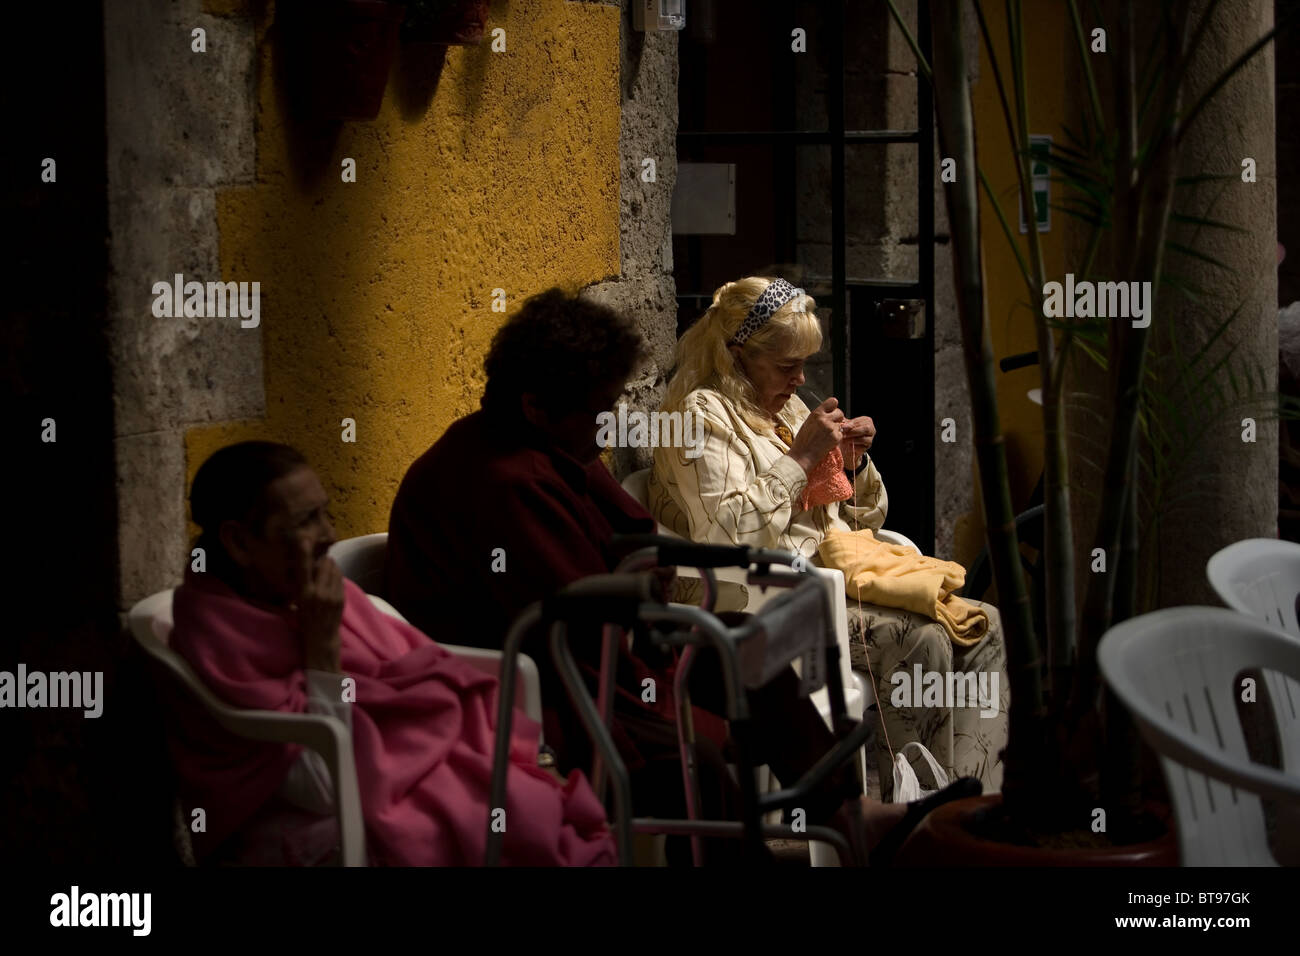 Alma Arjona, 62, right, knits as she sits with other women in Our Lady of Guadalupe Home for the Elderly, Mexico - Stock Image